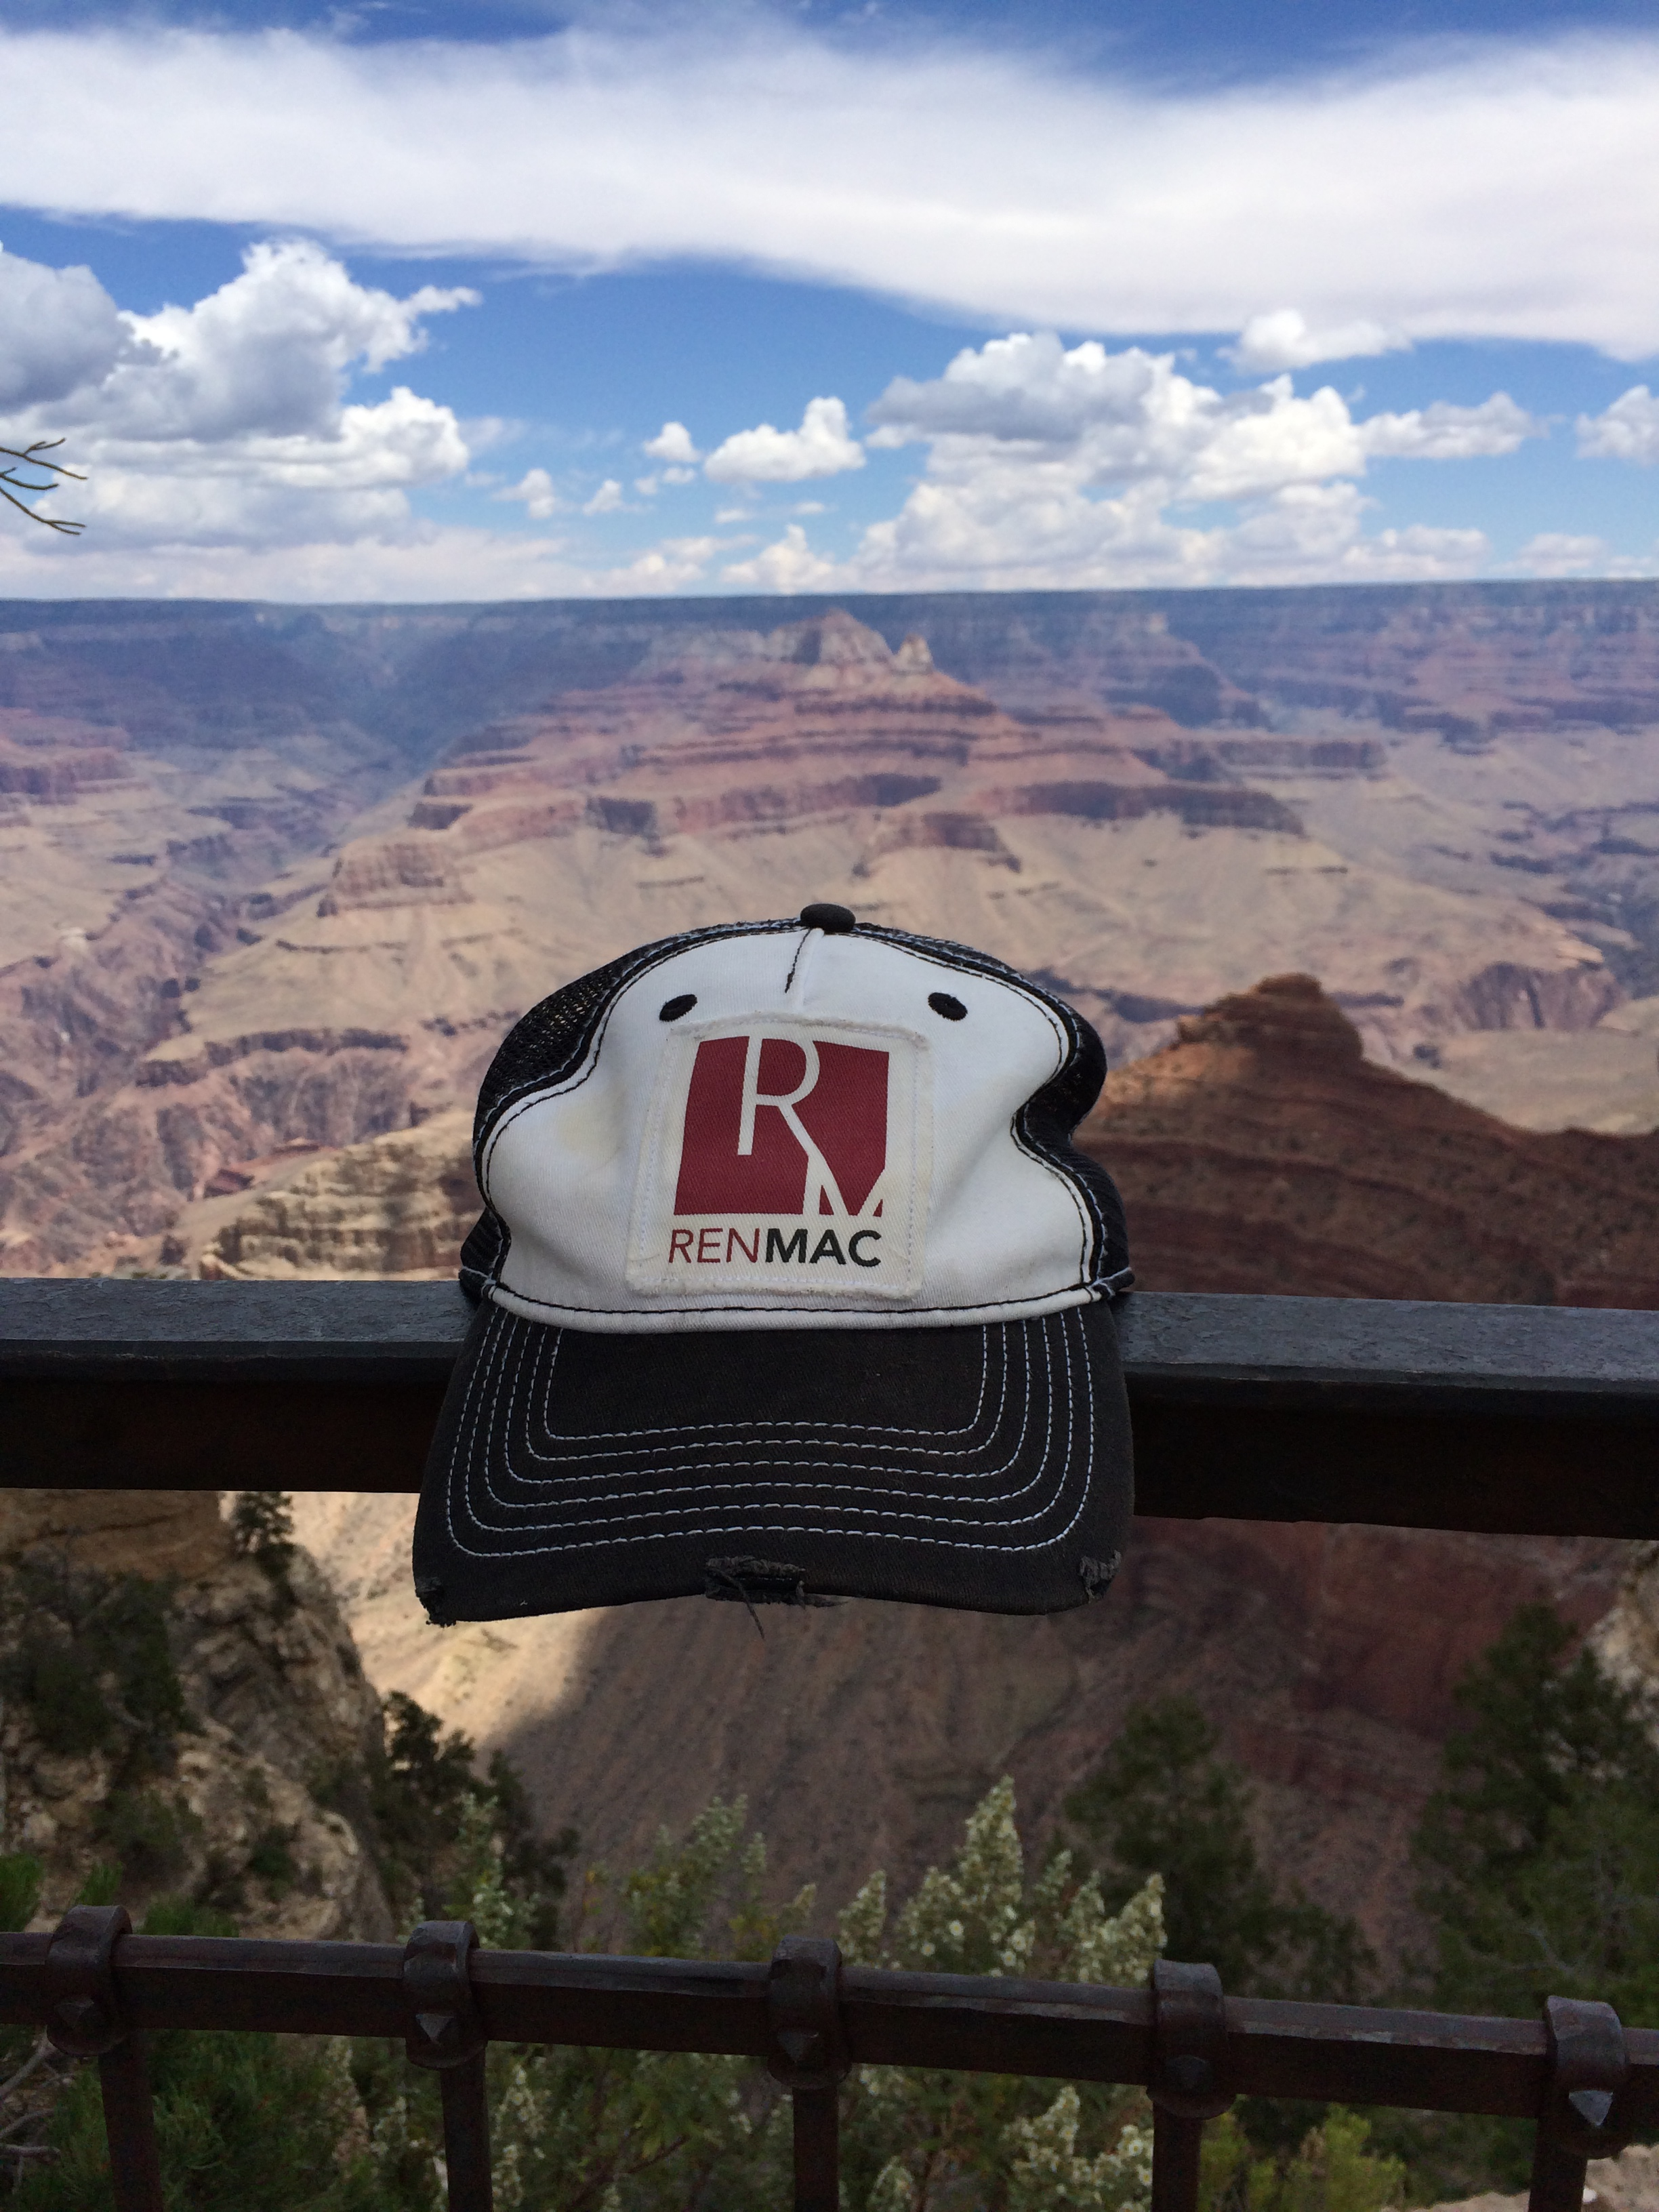 Renmac in GrandCanyon